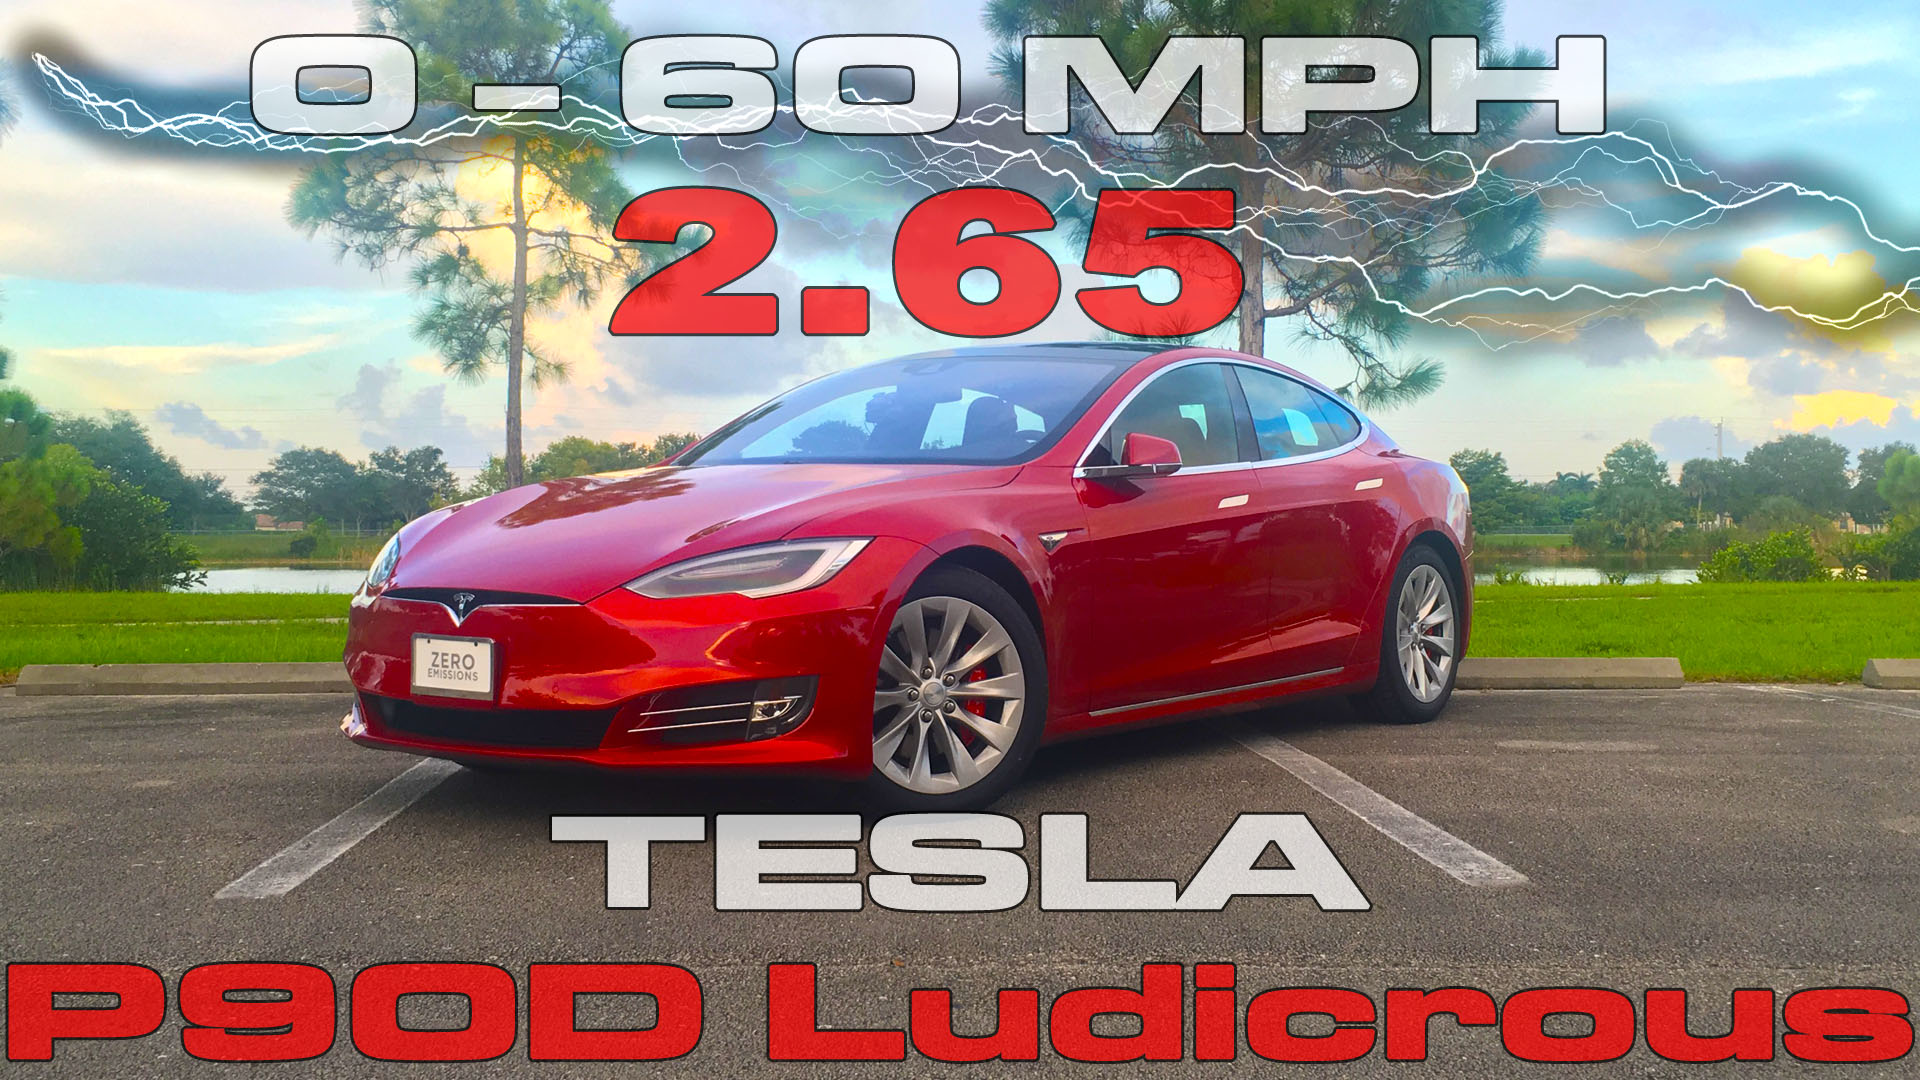 0-60 MPH in 2.65 with the Refreshed Tesla Model S P90D Ludicrous